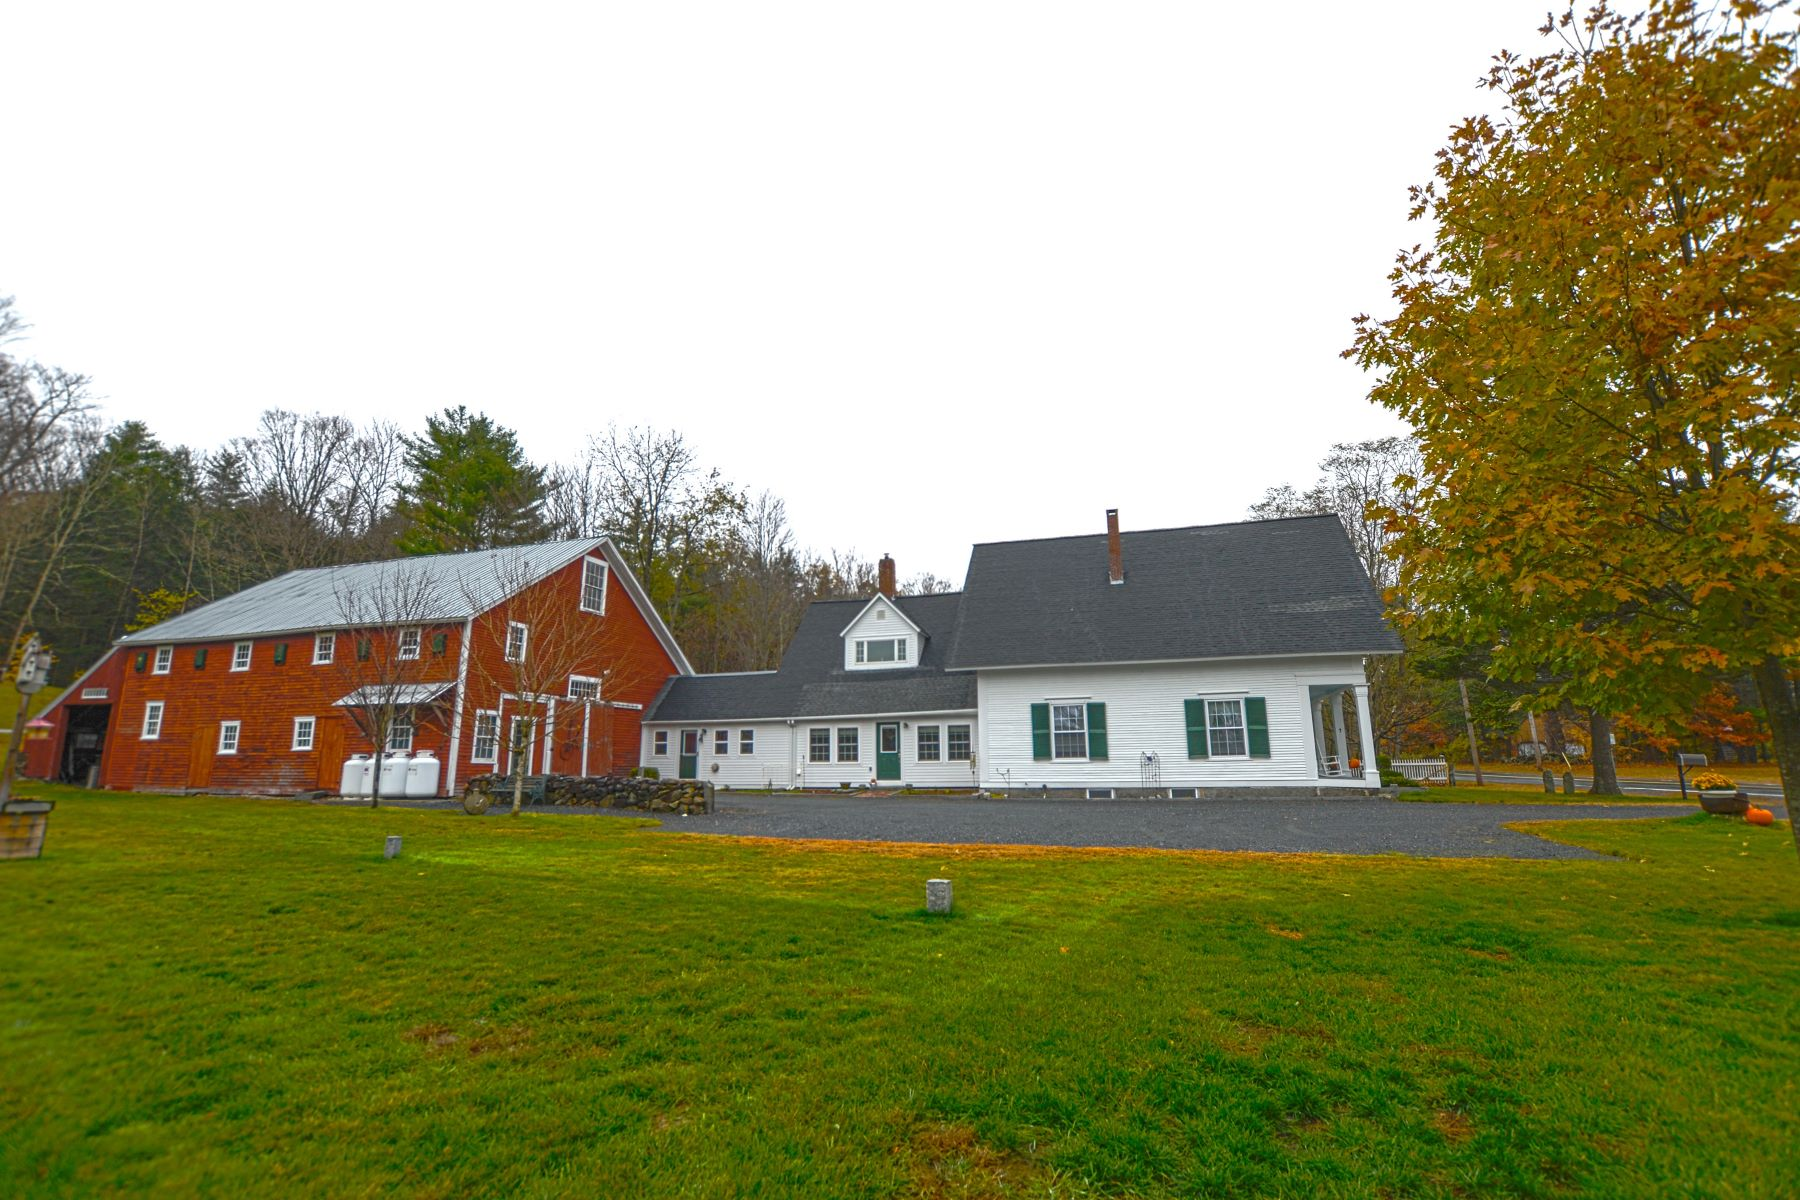 Single Family Home for Sale at Five Bedroom Farmhouse with Barn in Wentworth 859 Mount Moosilauke Hwy Wentworth, New Hampshire 03282 United States